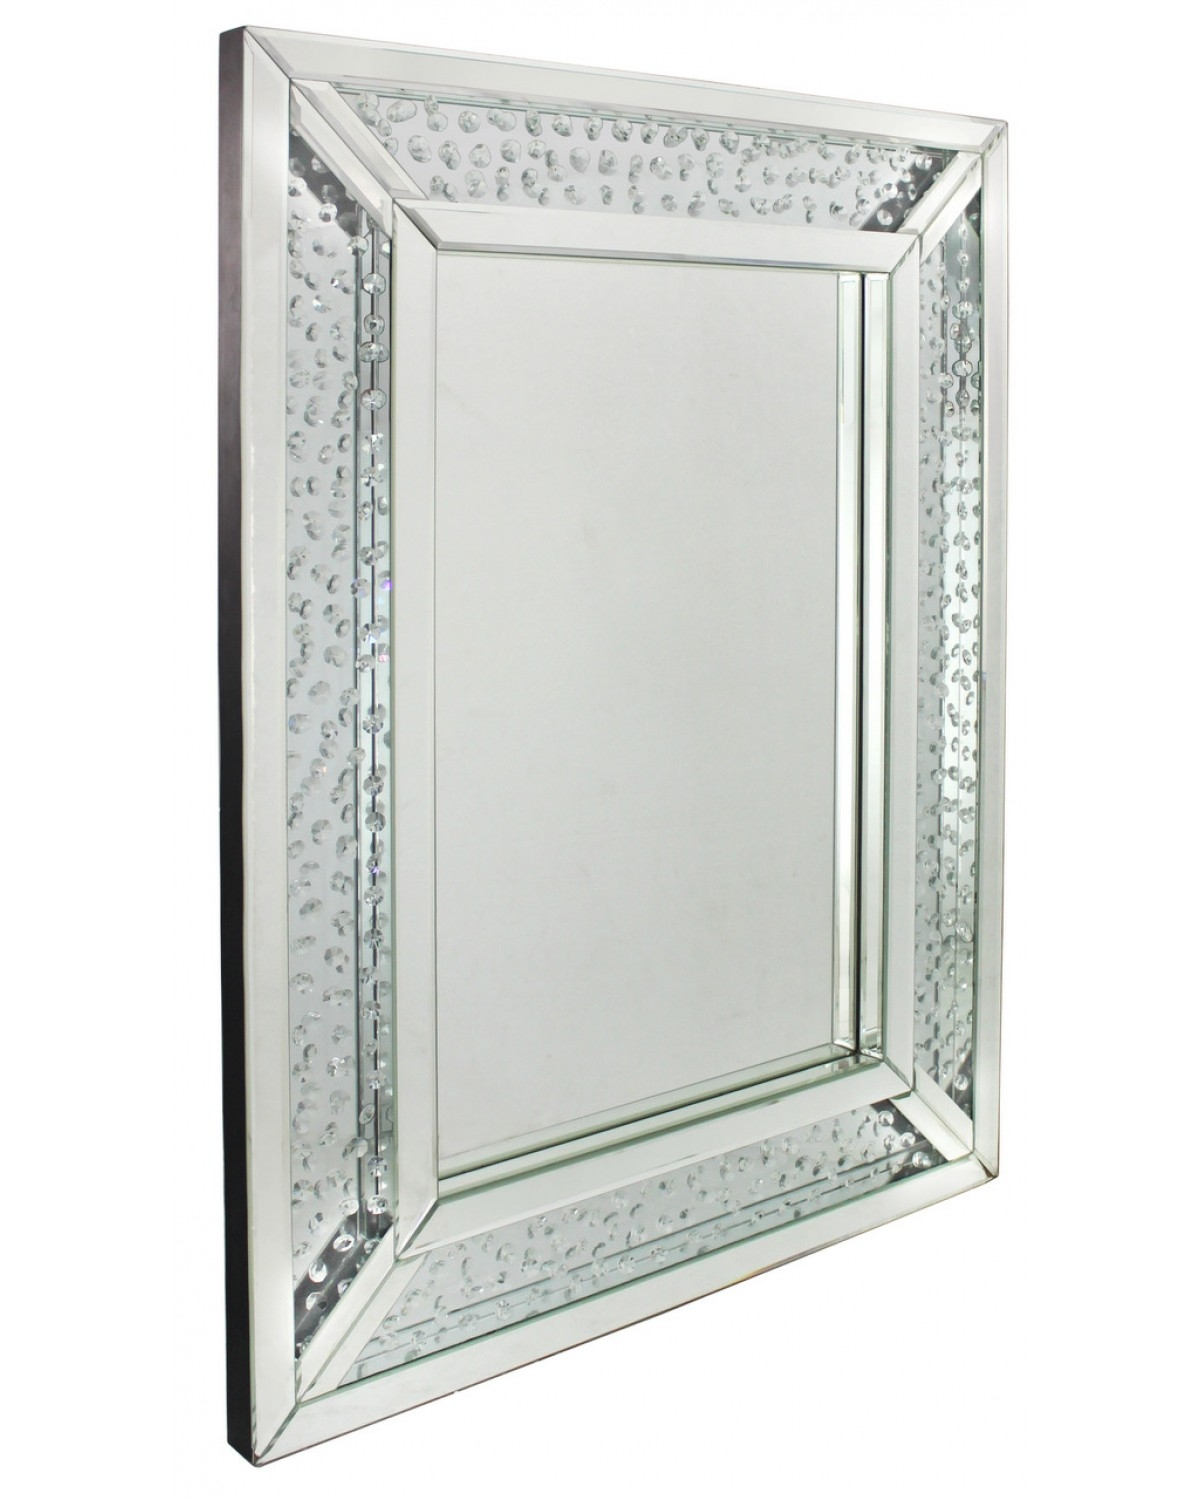 Astoria Floating Crystal Rectangle Wall Mirror With Wall Mirror With Crystals (Image 1 of 15)